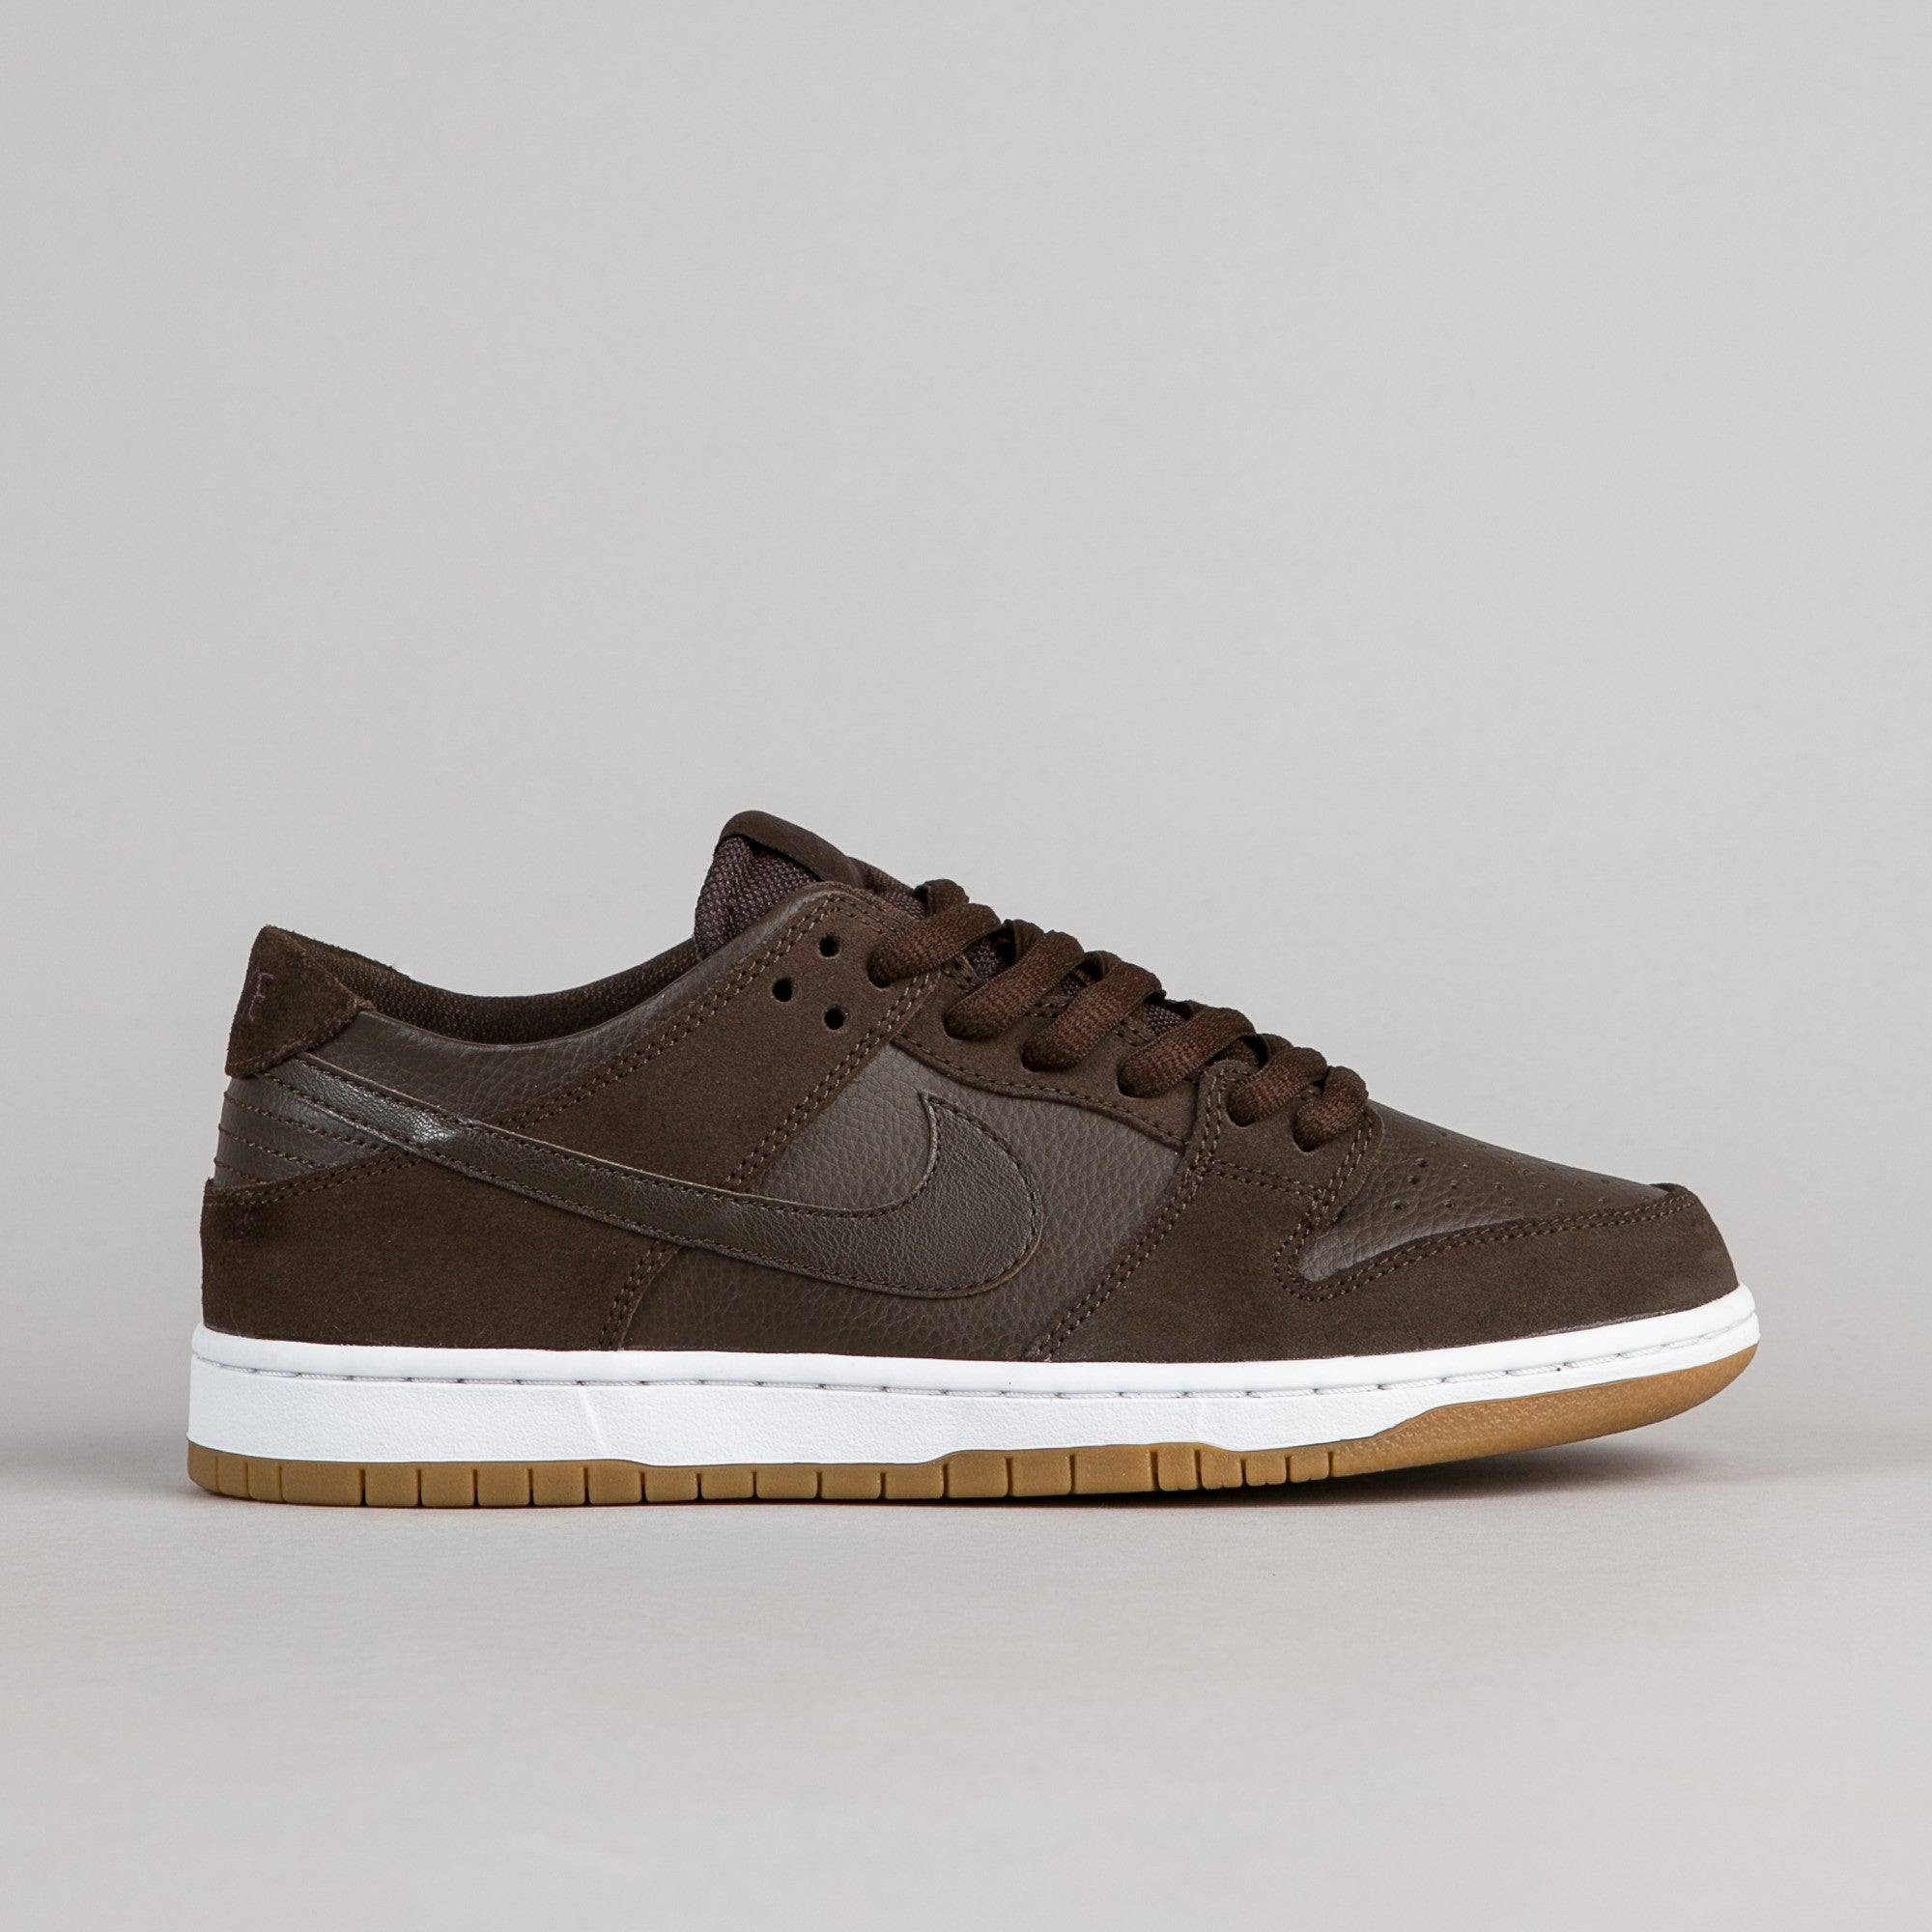 sports shoes 1bf26 93842 Nike SB Dunk Low Pro Ishod Wair Shoes - Baroque Brown   Baroque Brown -  White